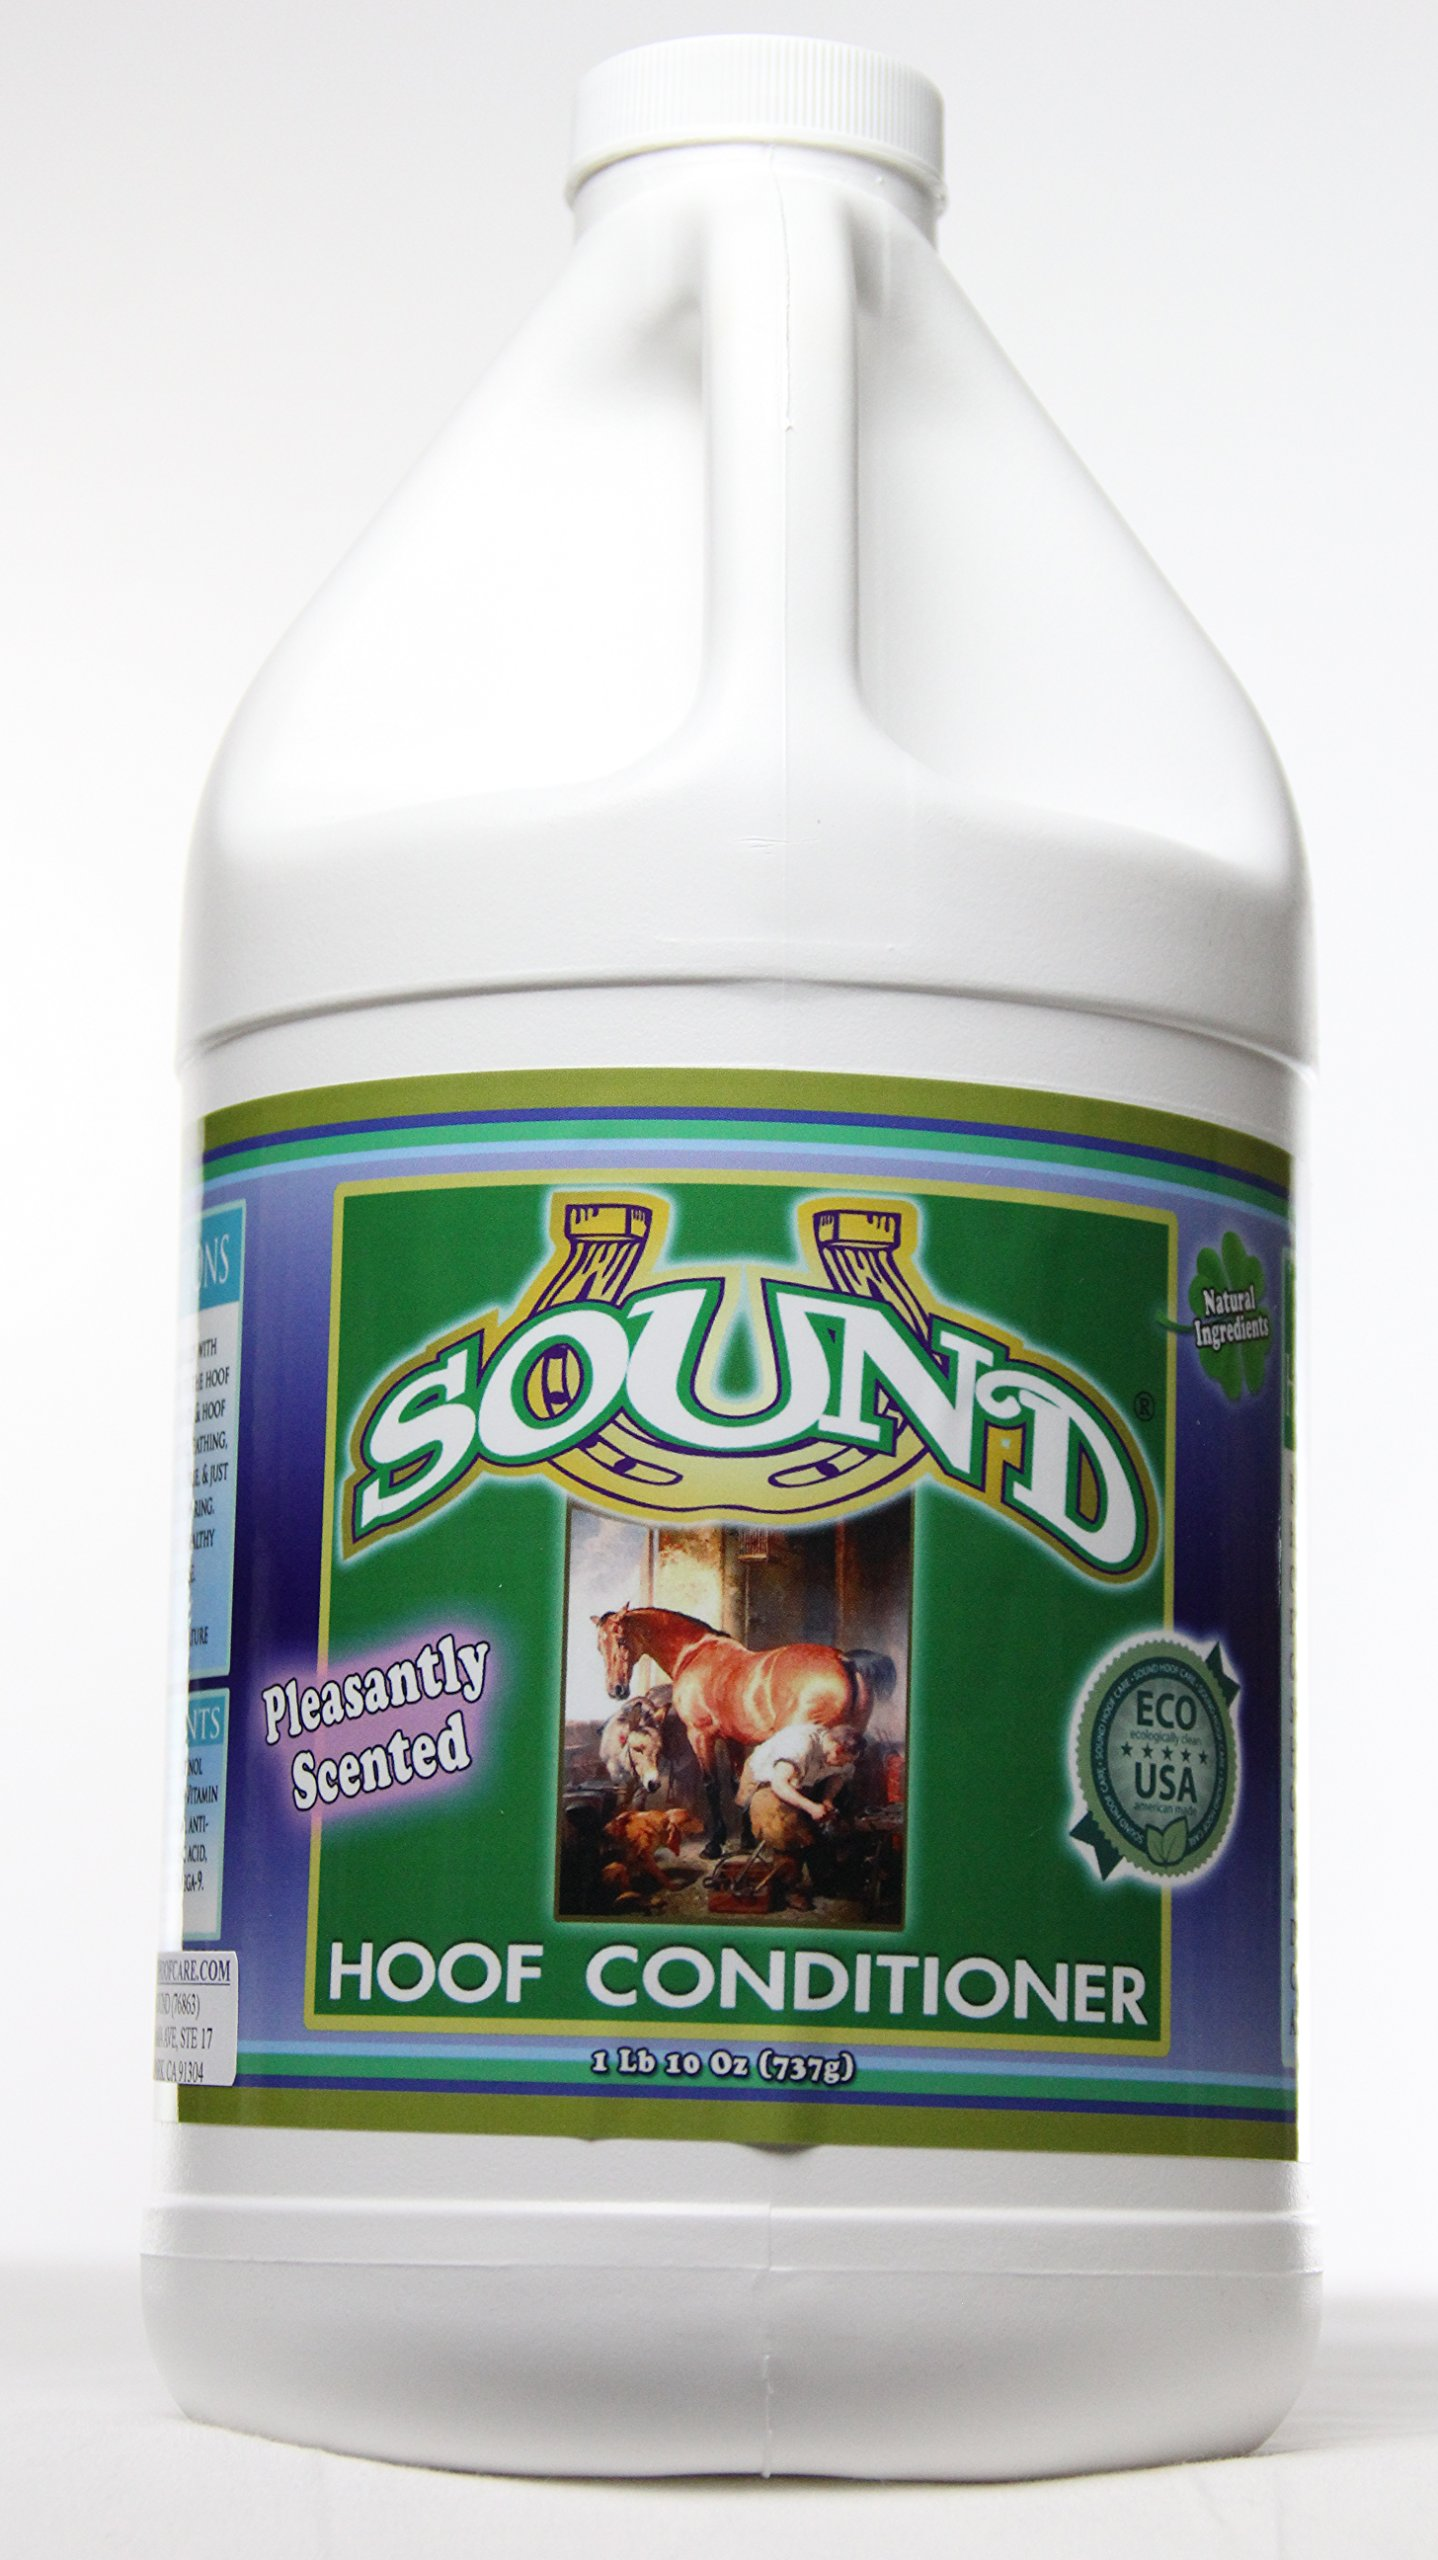 Sound Hoof Conditioner | 2 Quarts